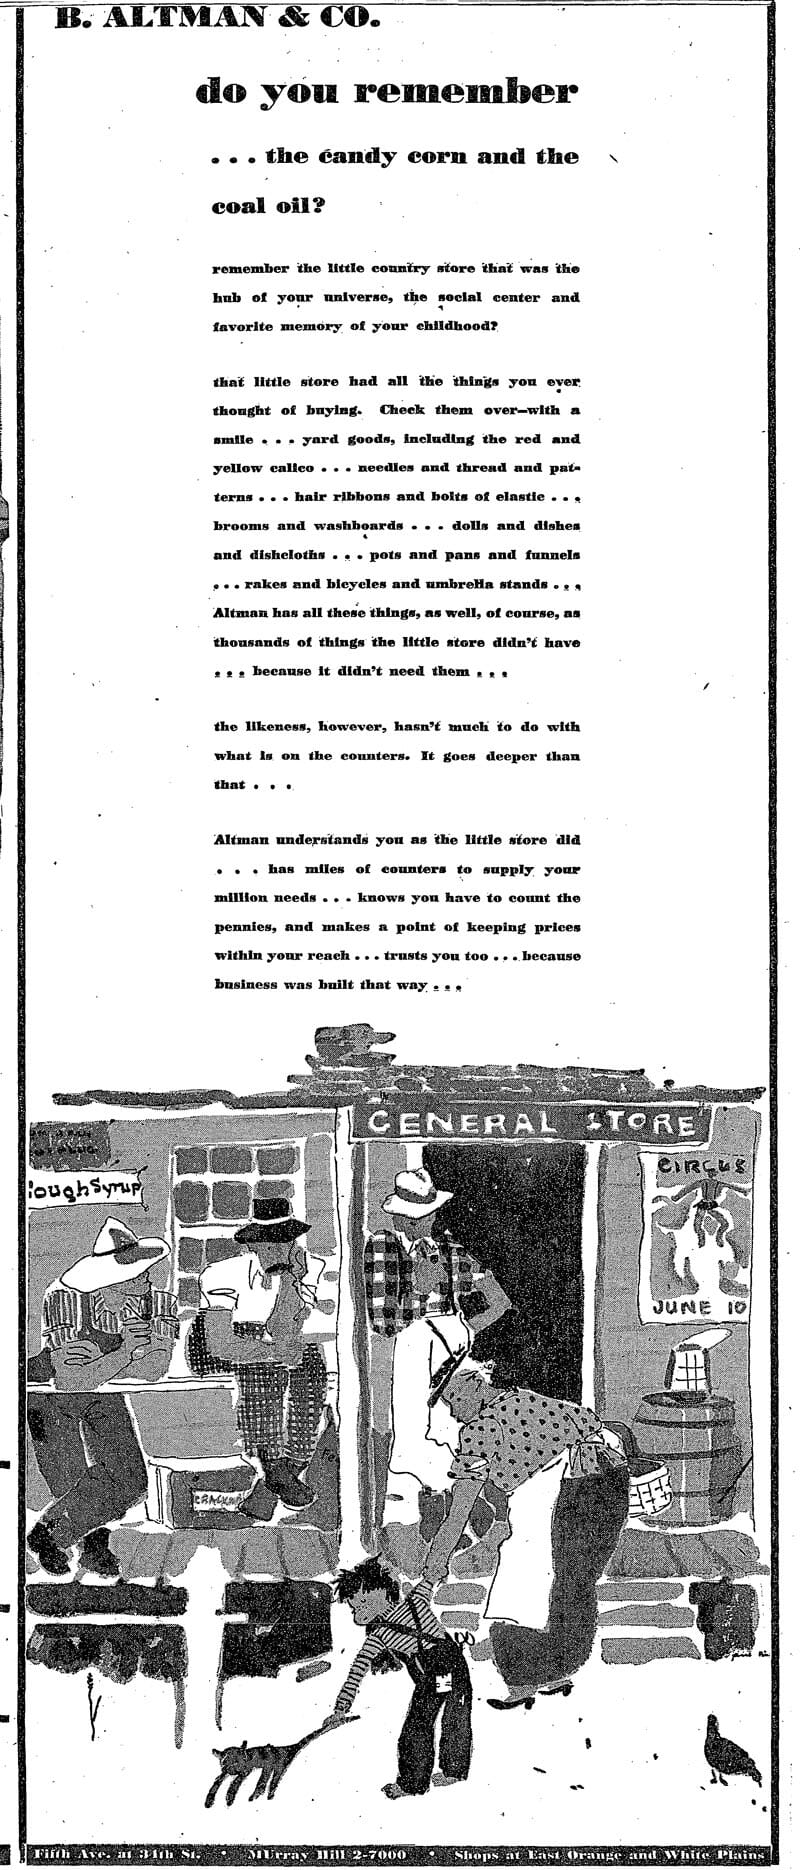 This June 10, 1934 from the New York Times banked on rural nostalgia.